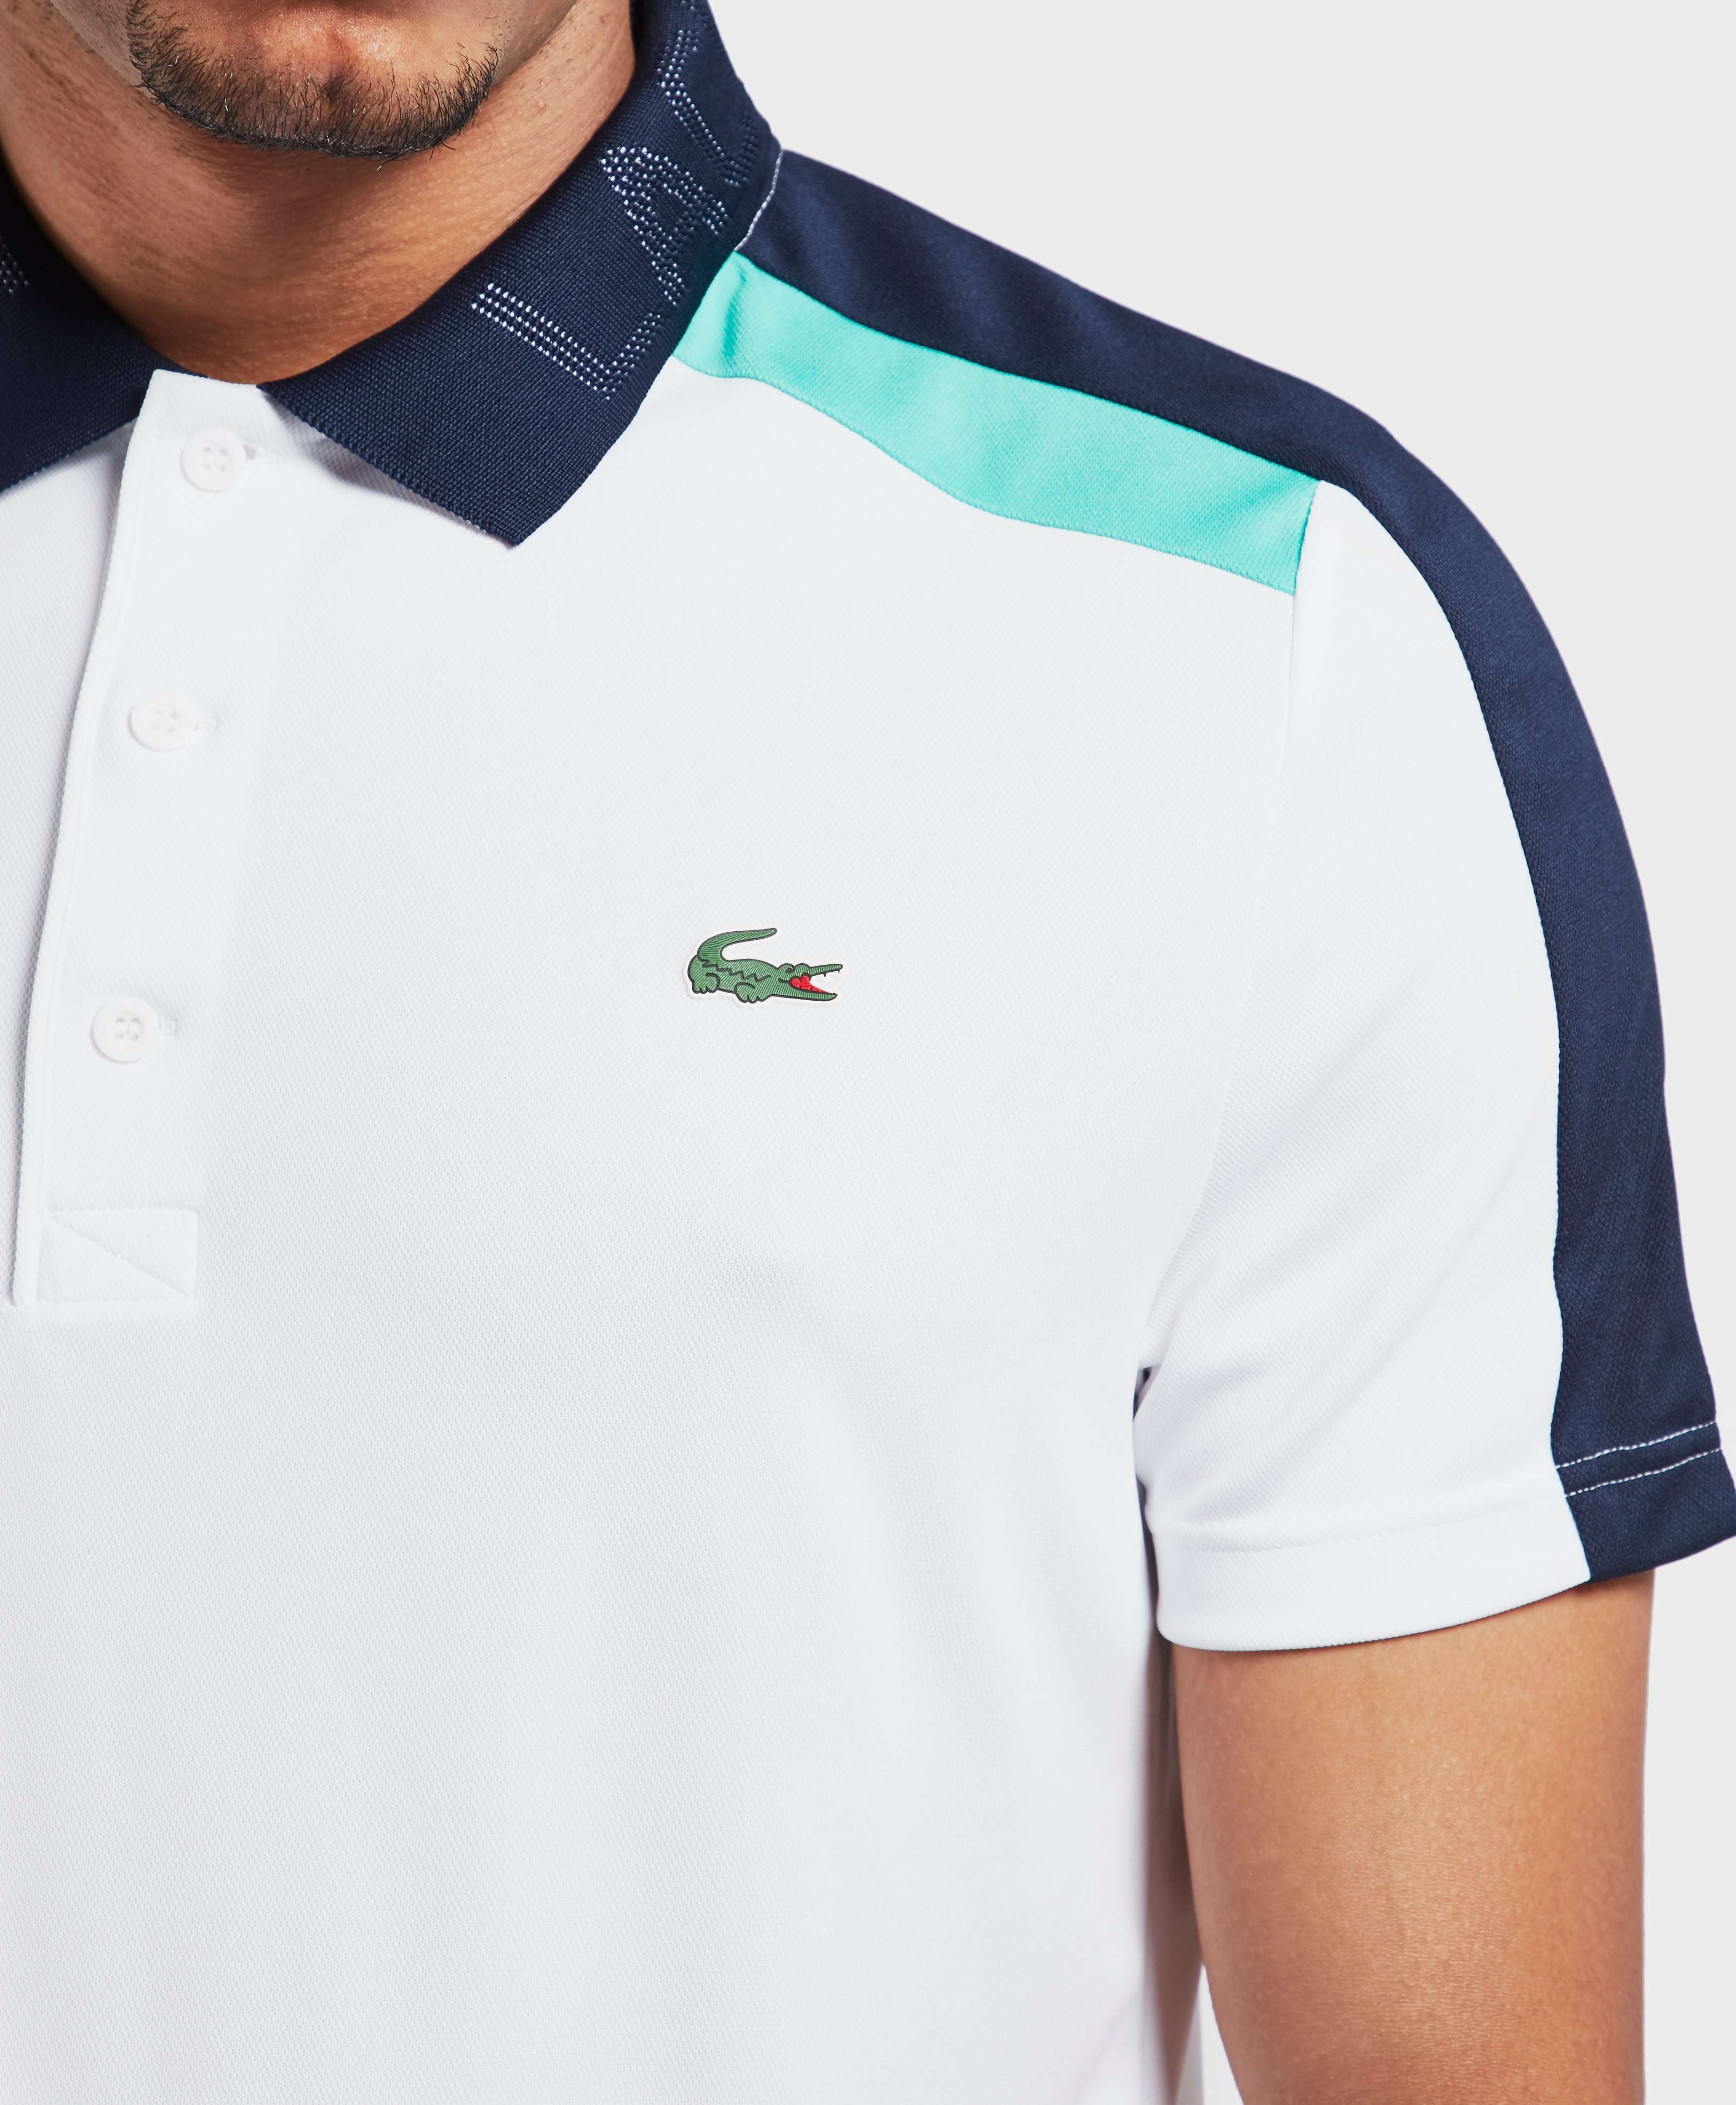 Lacoste Poly Branded Neck Short Sleeve Polo Shirt